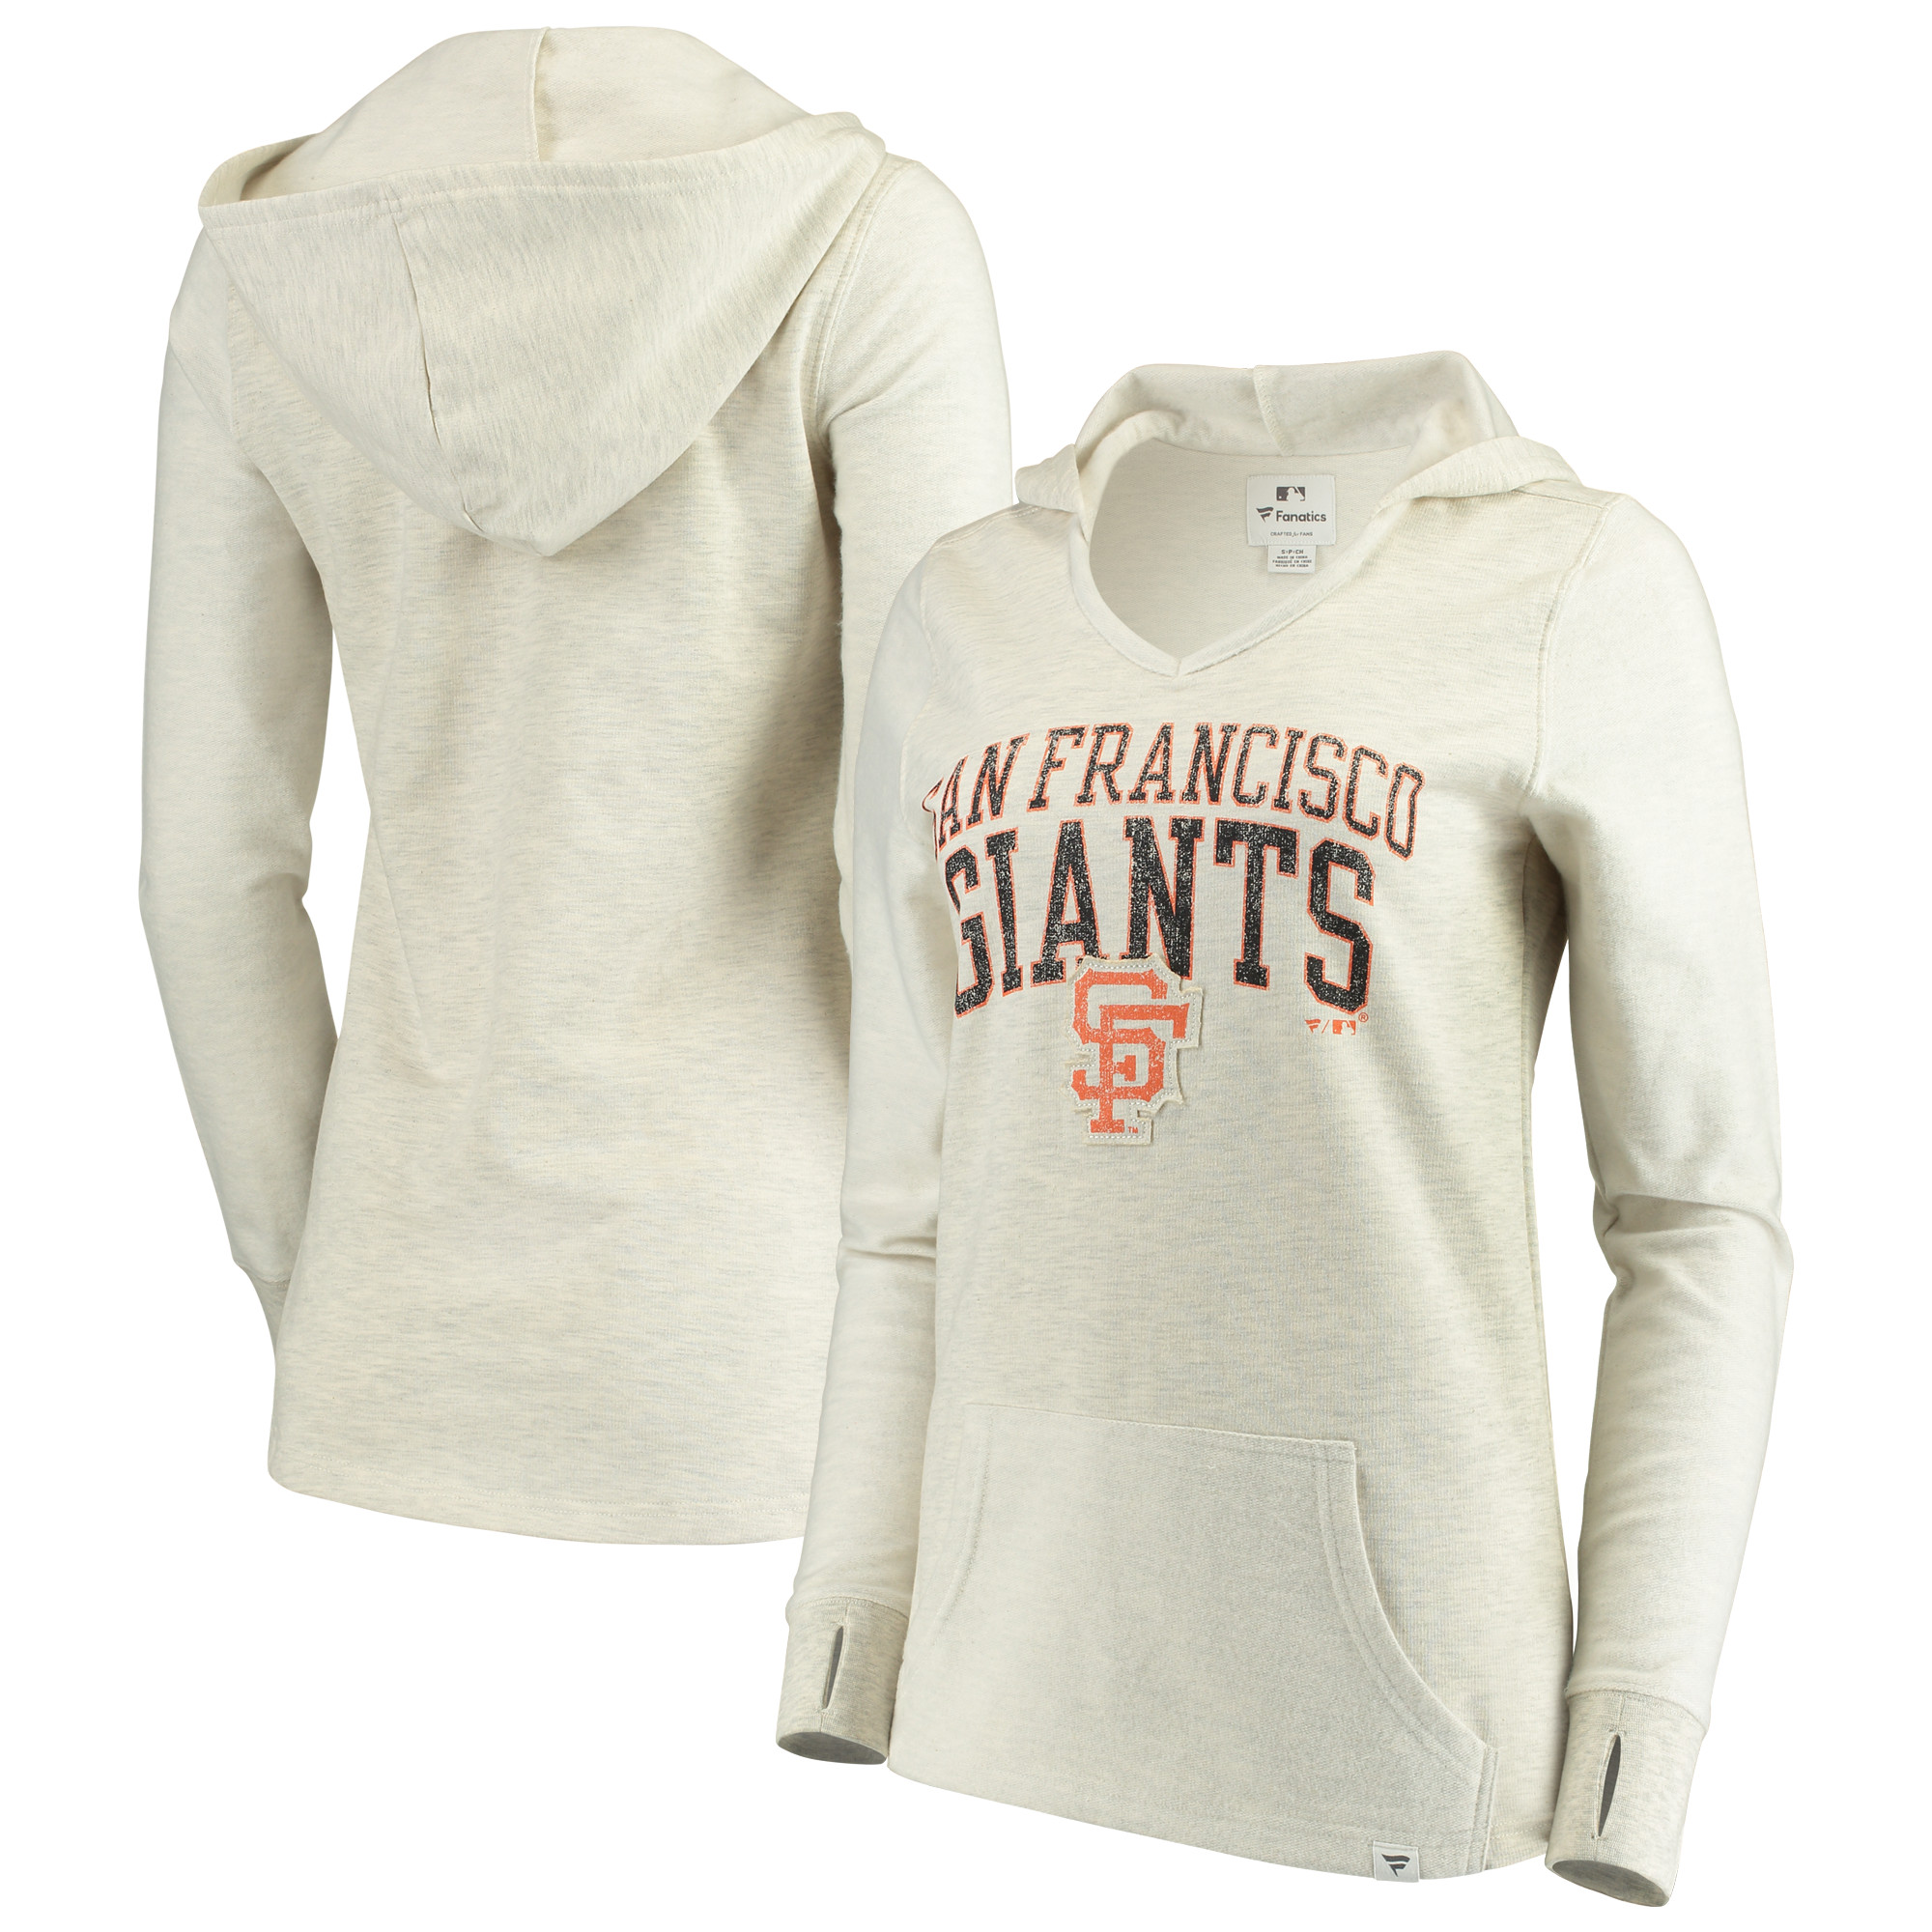 San Francisco Giants Fanatics Branded Women's True Classics Thermal Pullover Hoodie - White